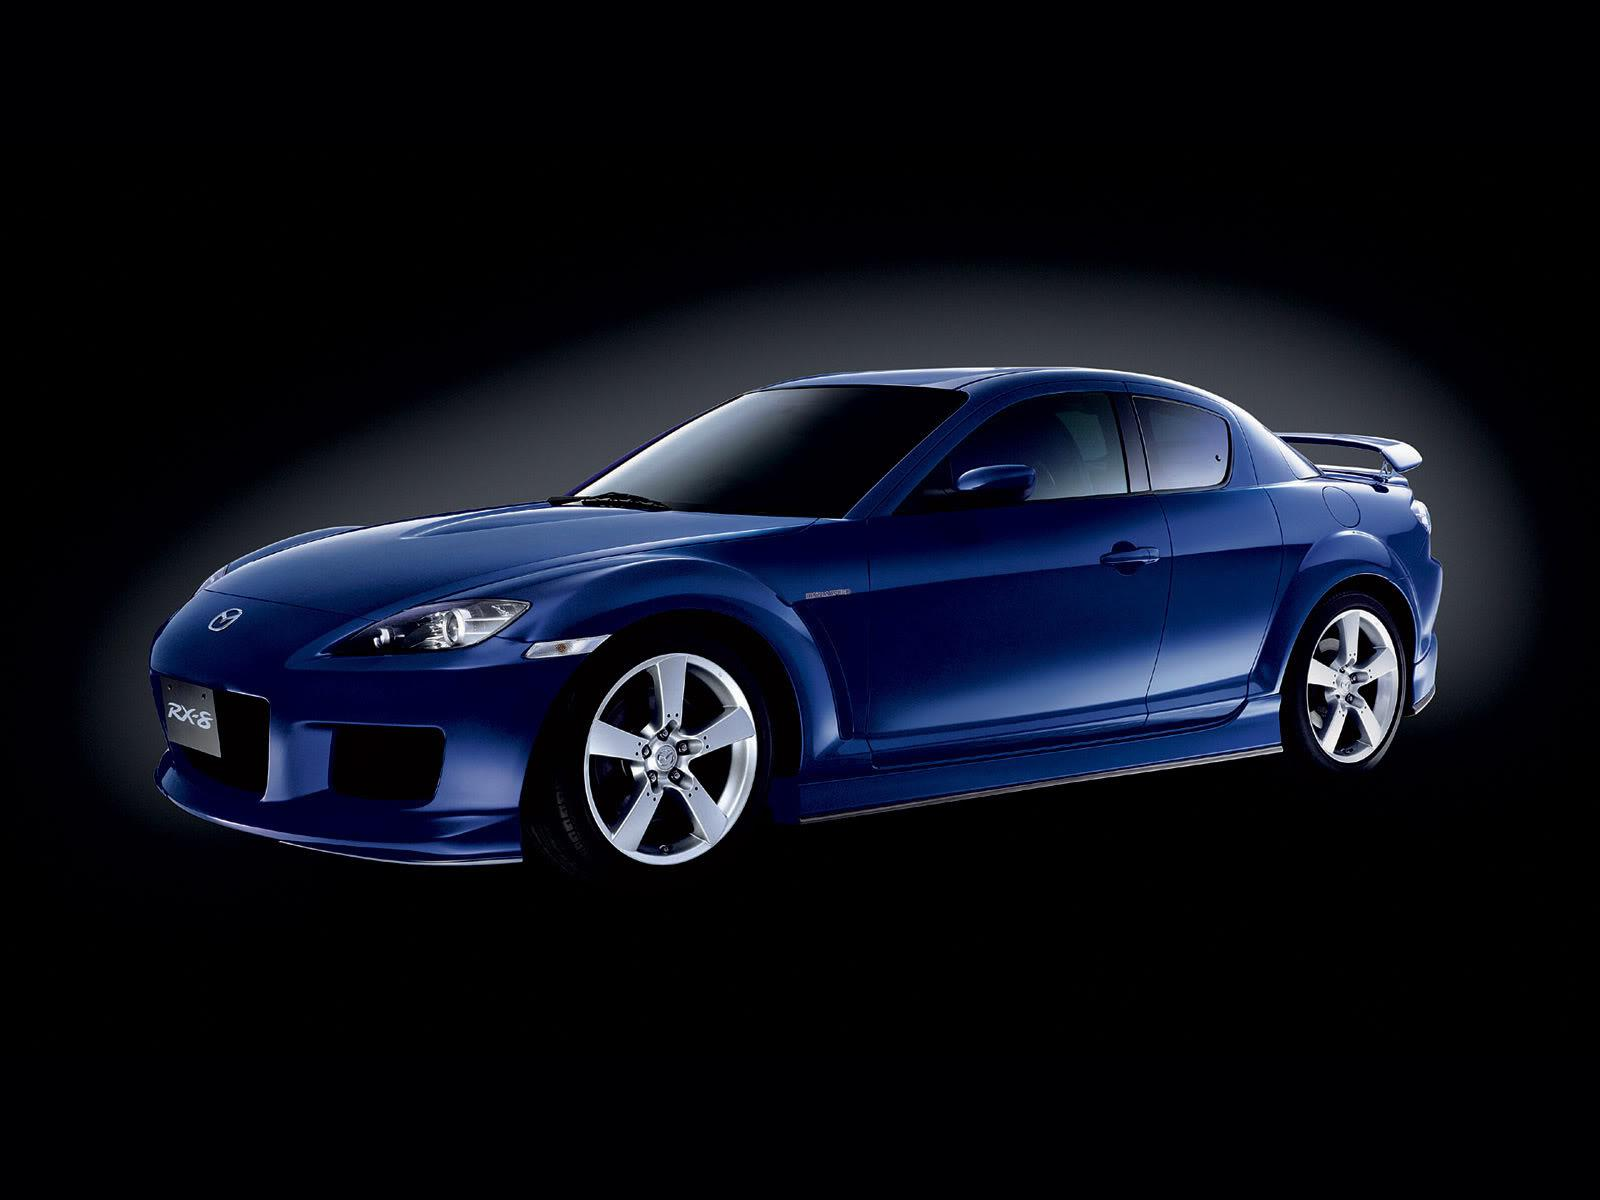 Mazda Rx8 Wallpaper Hd Mobile Wallpapers Wiring Harness 600watts Pioneer Subwoofer Kit And 2 Car Door Speakers 450 Watts Free Amp 600 Sub Need I Say More X Bose